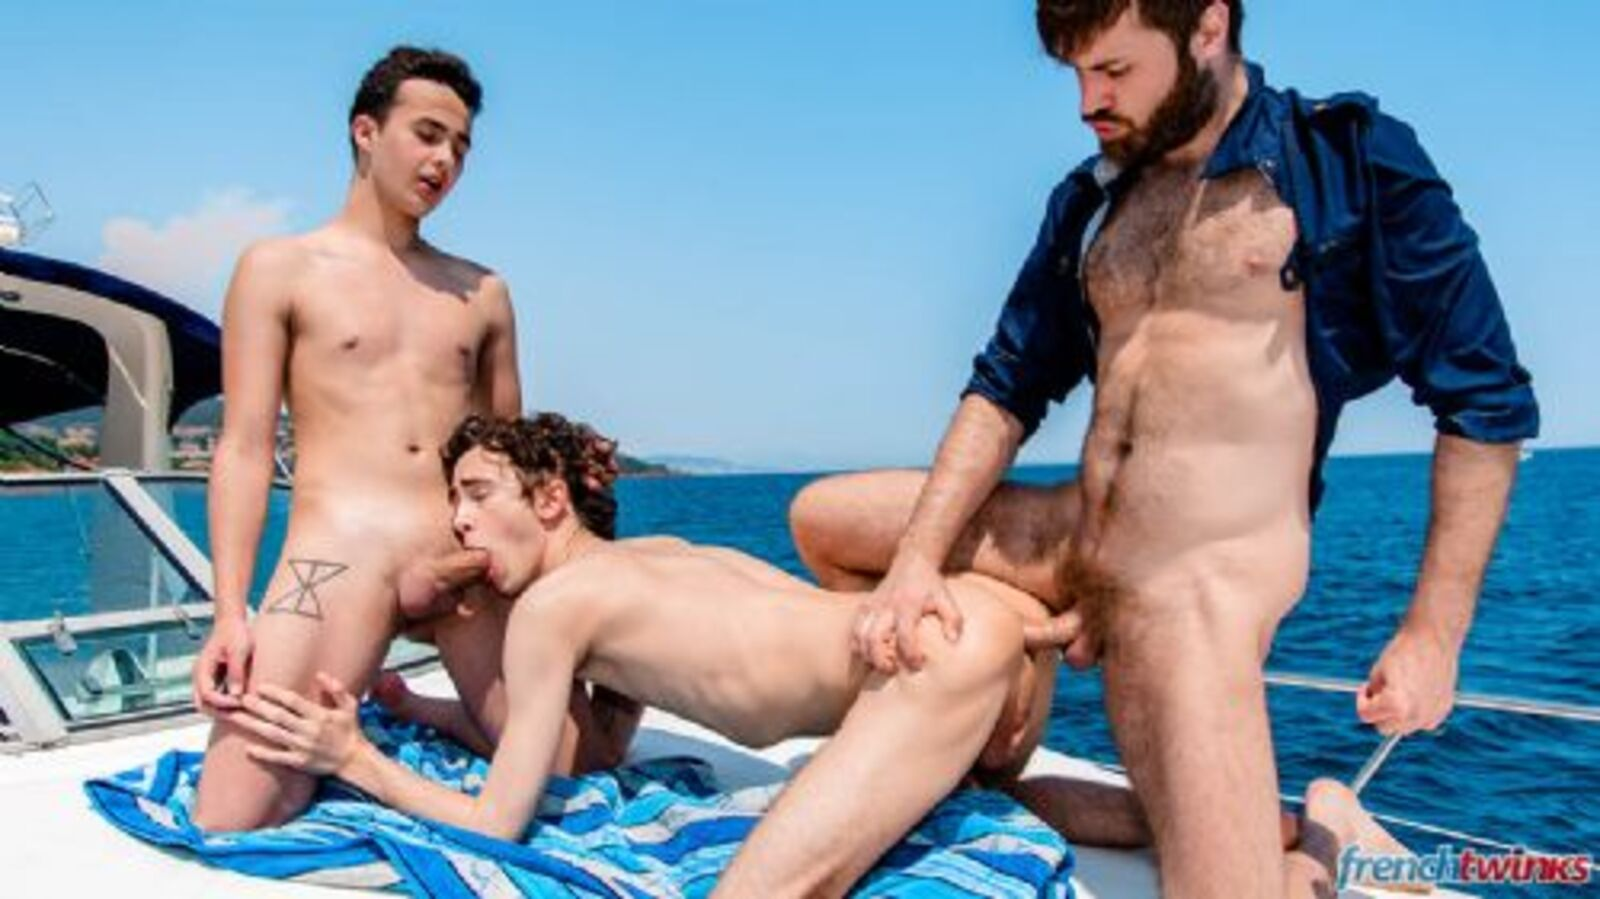 FRENCHTWINKS 240818-04